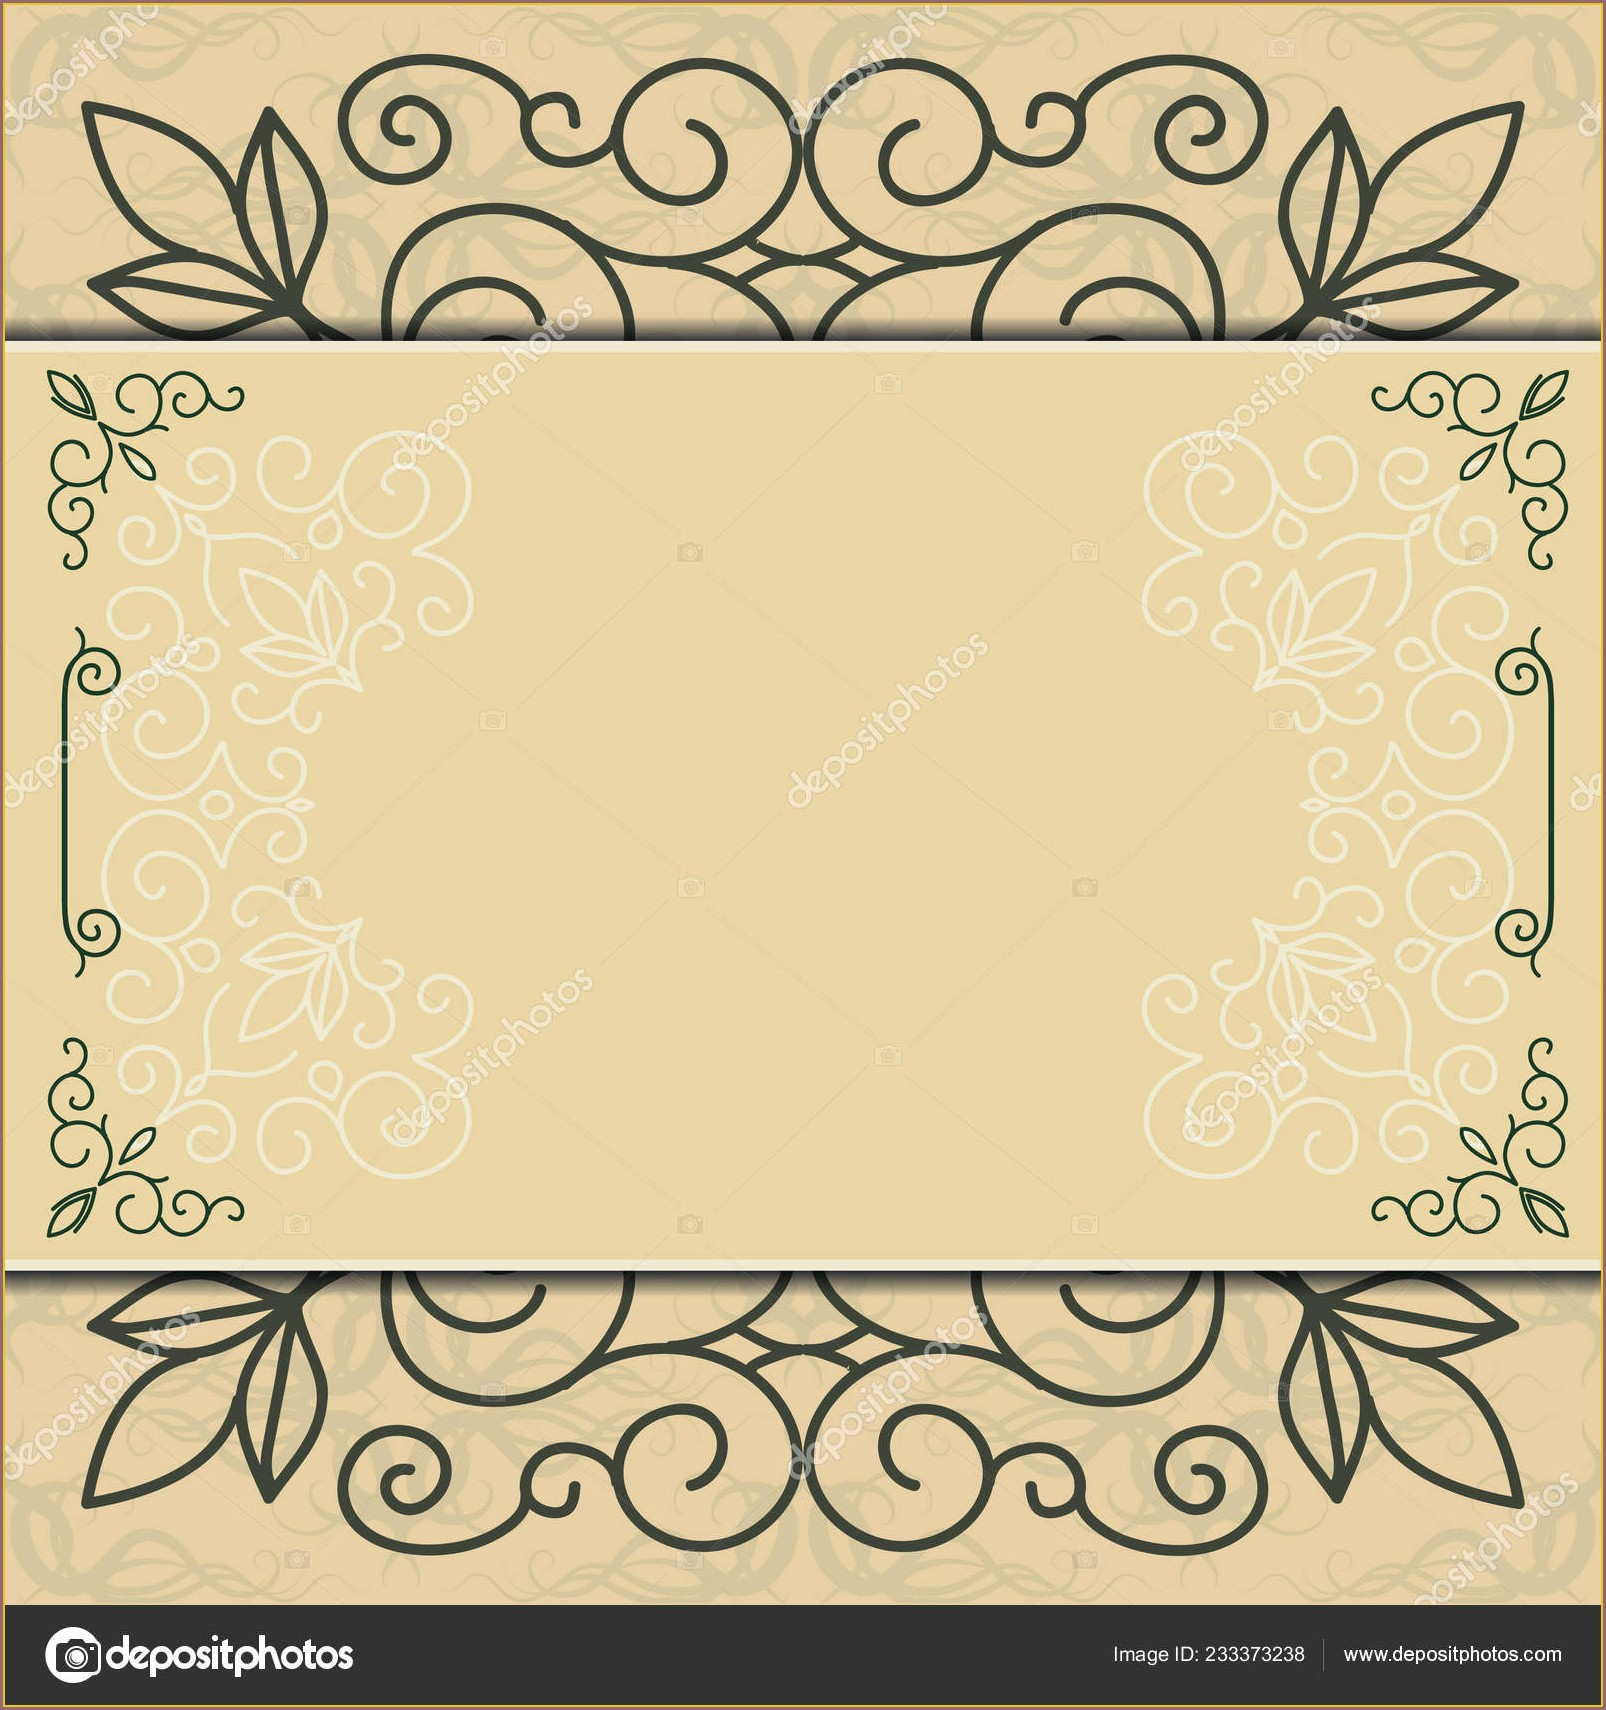 Background Invitation Card Frame Design